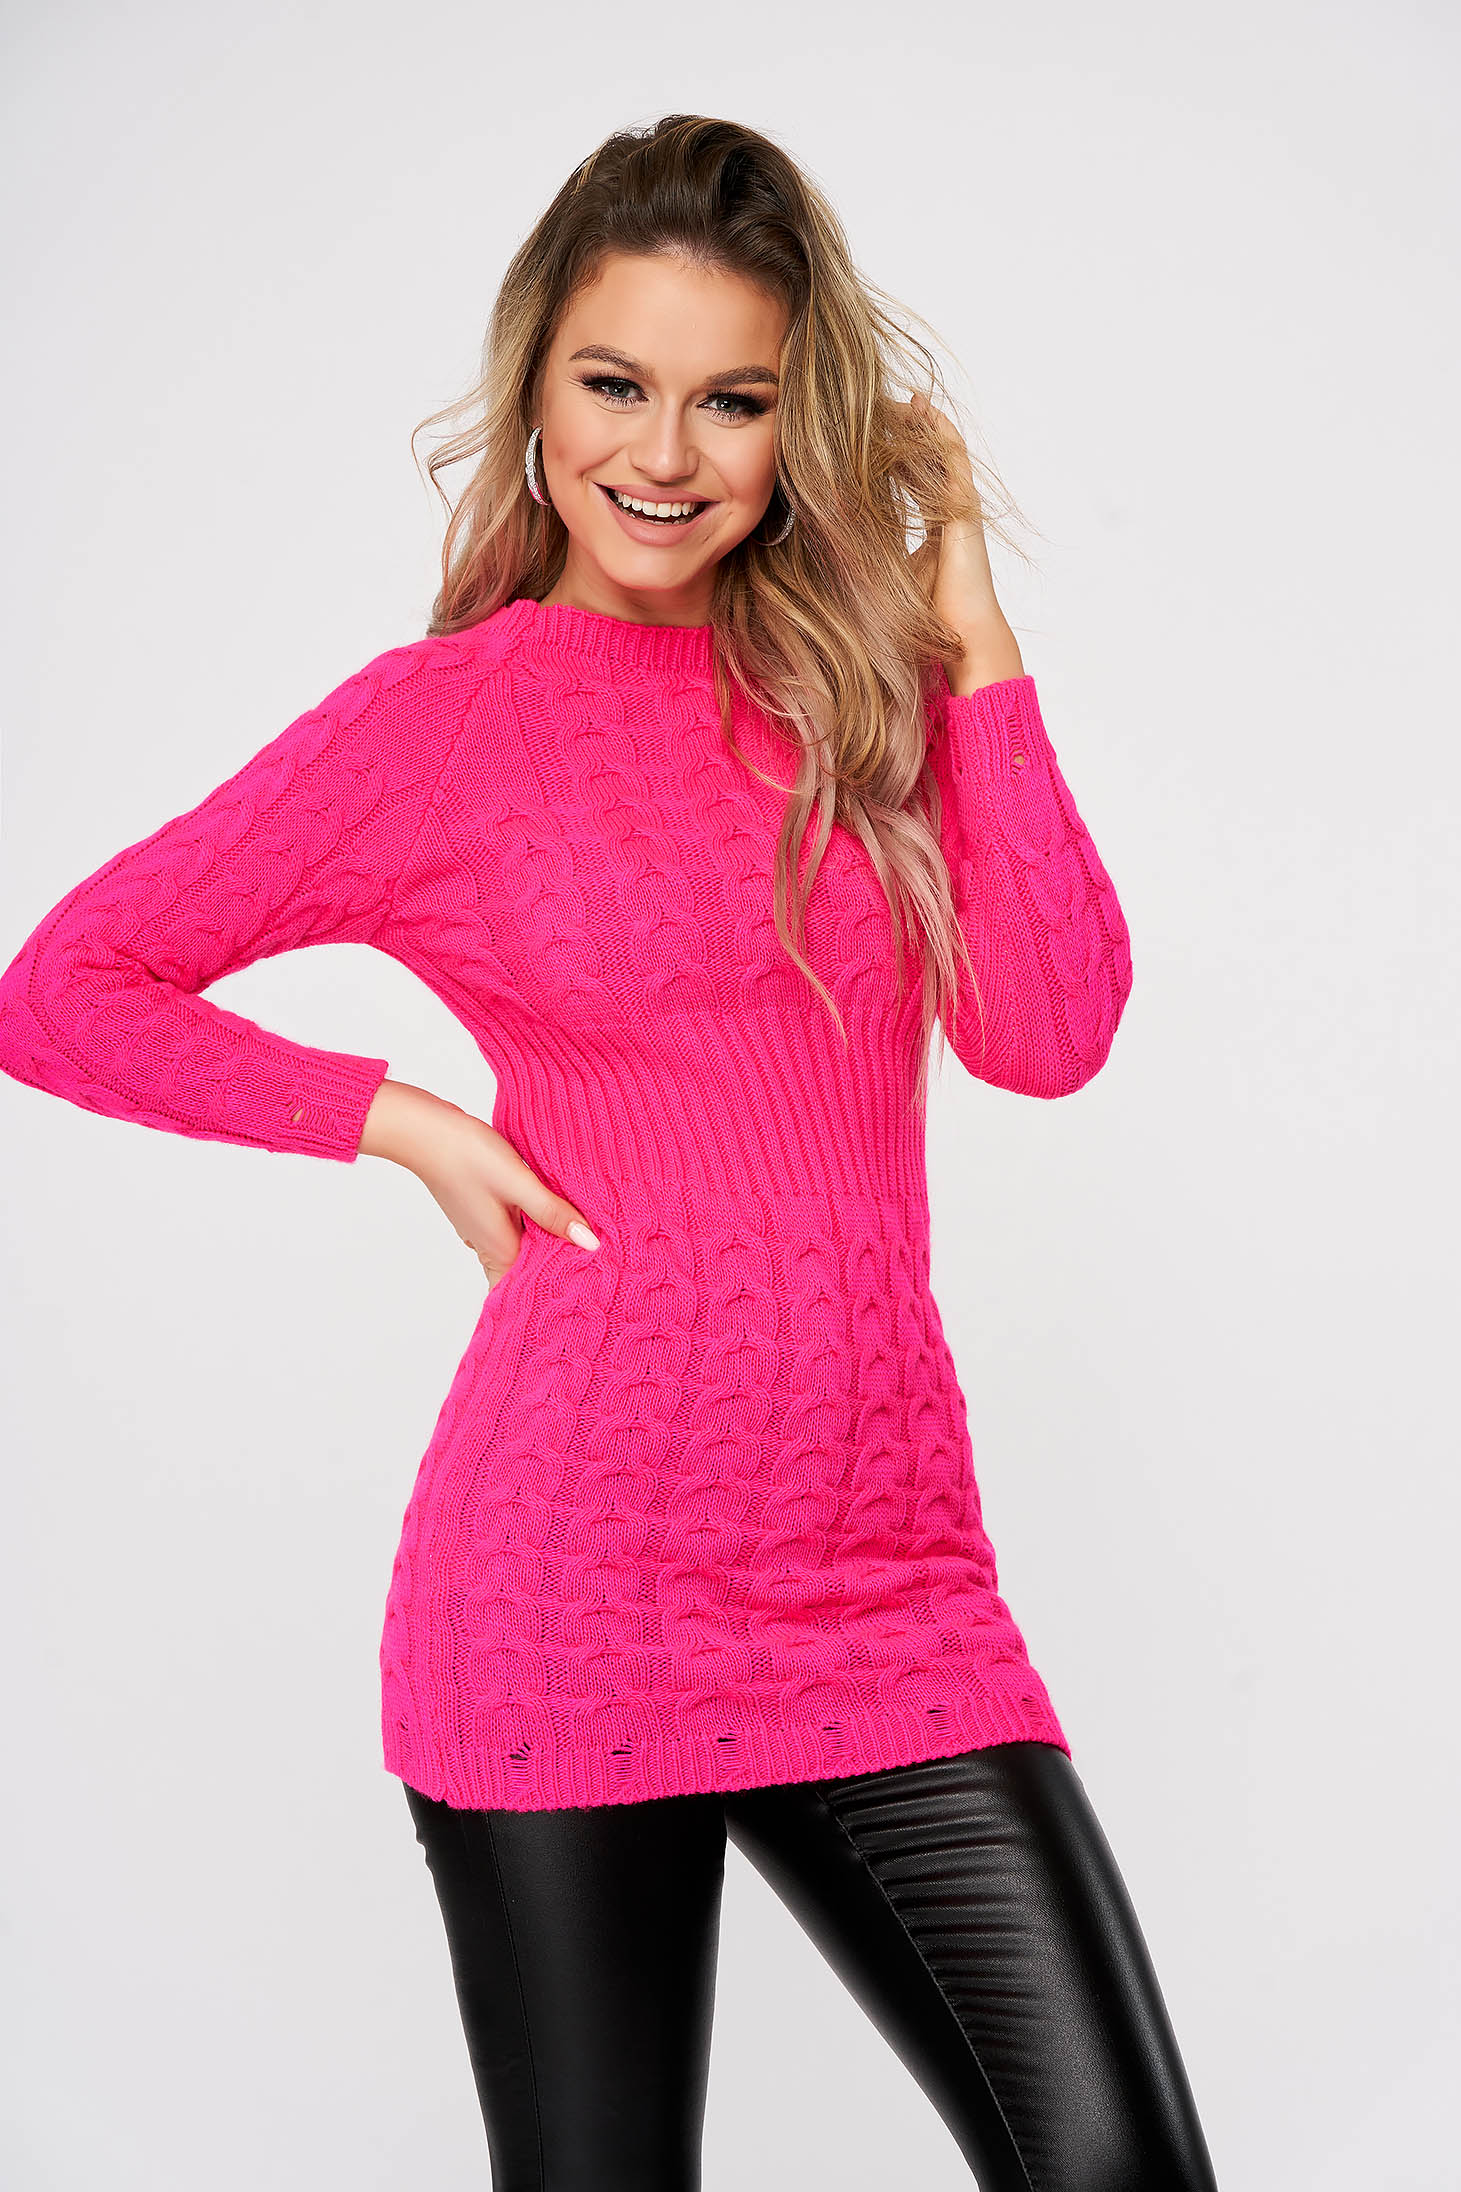 Pink sweater casual knitted fabric with tented cut